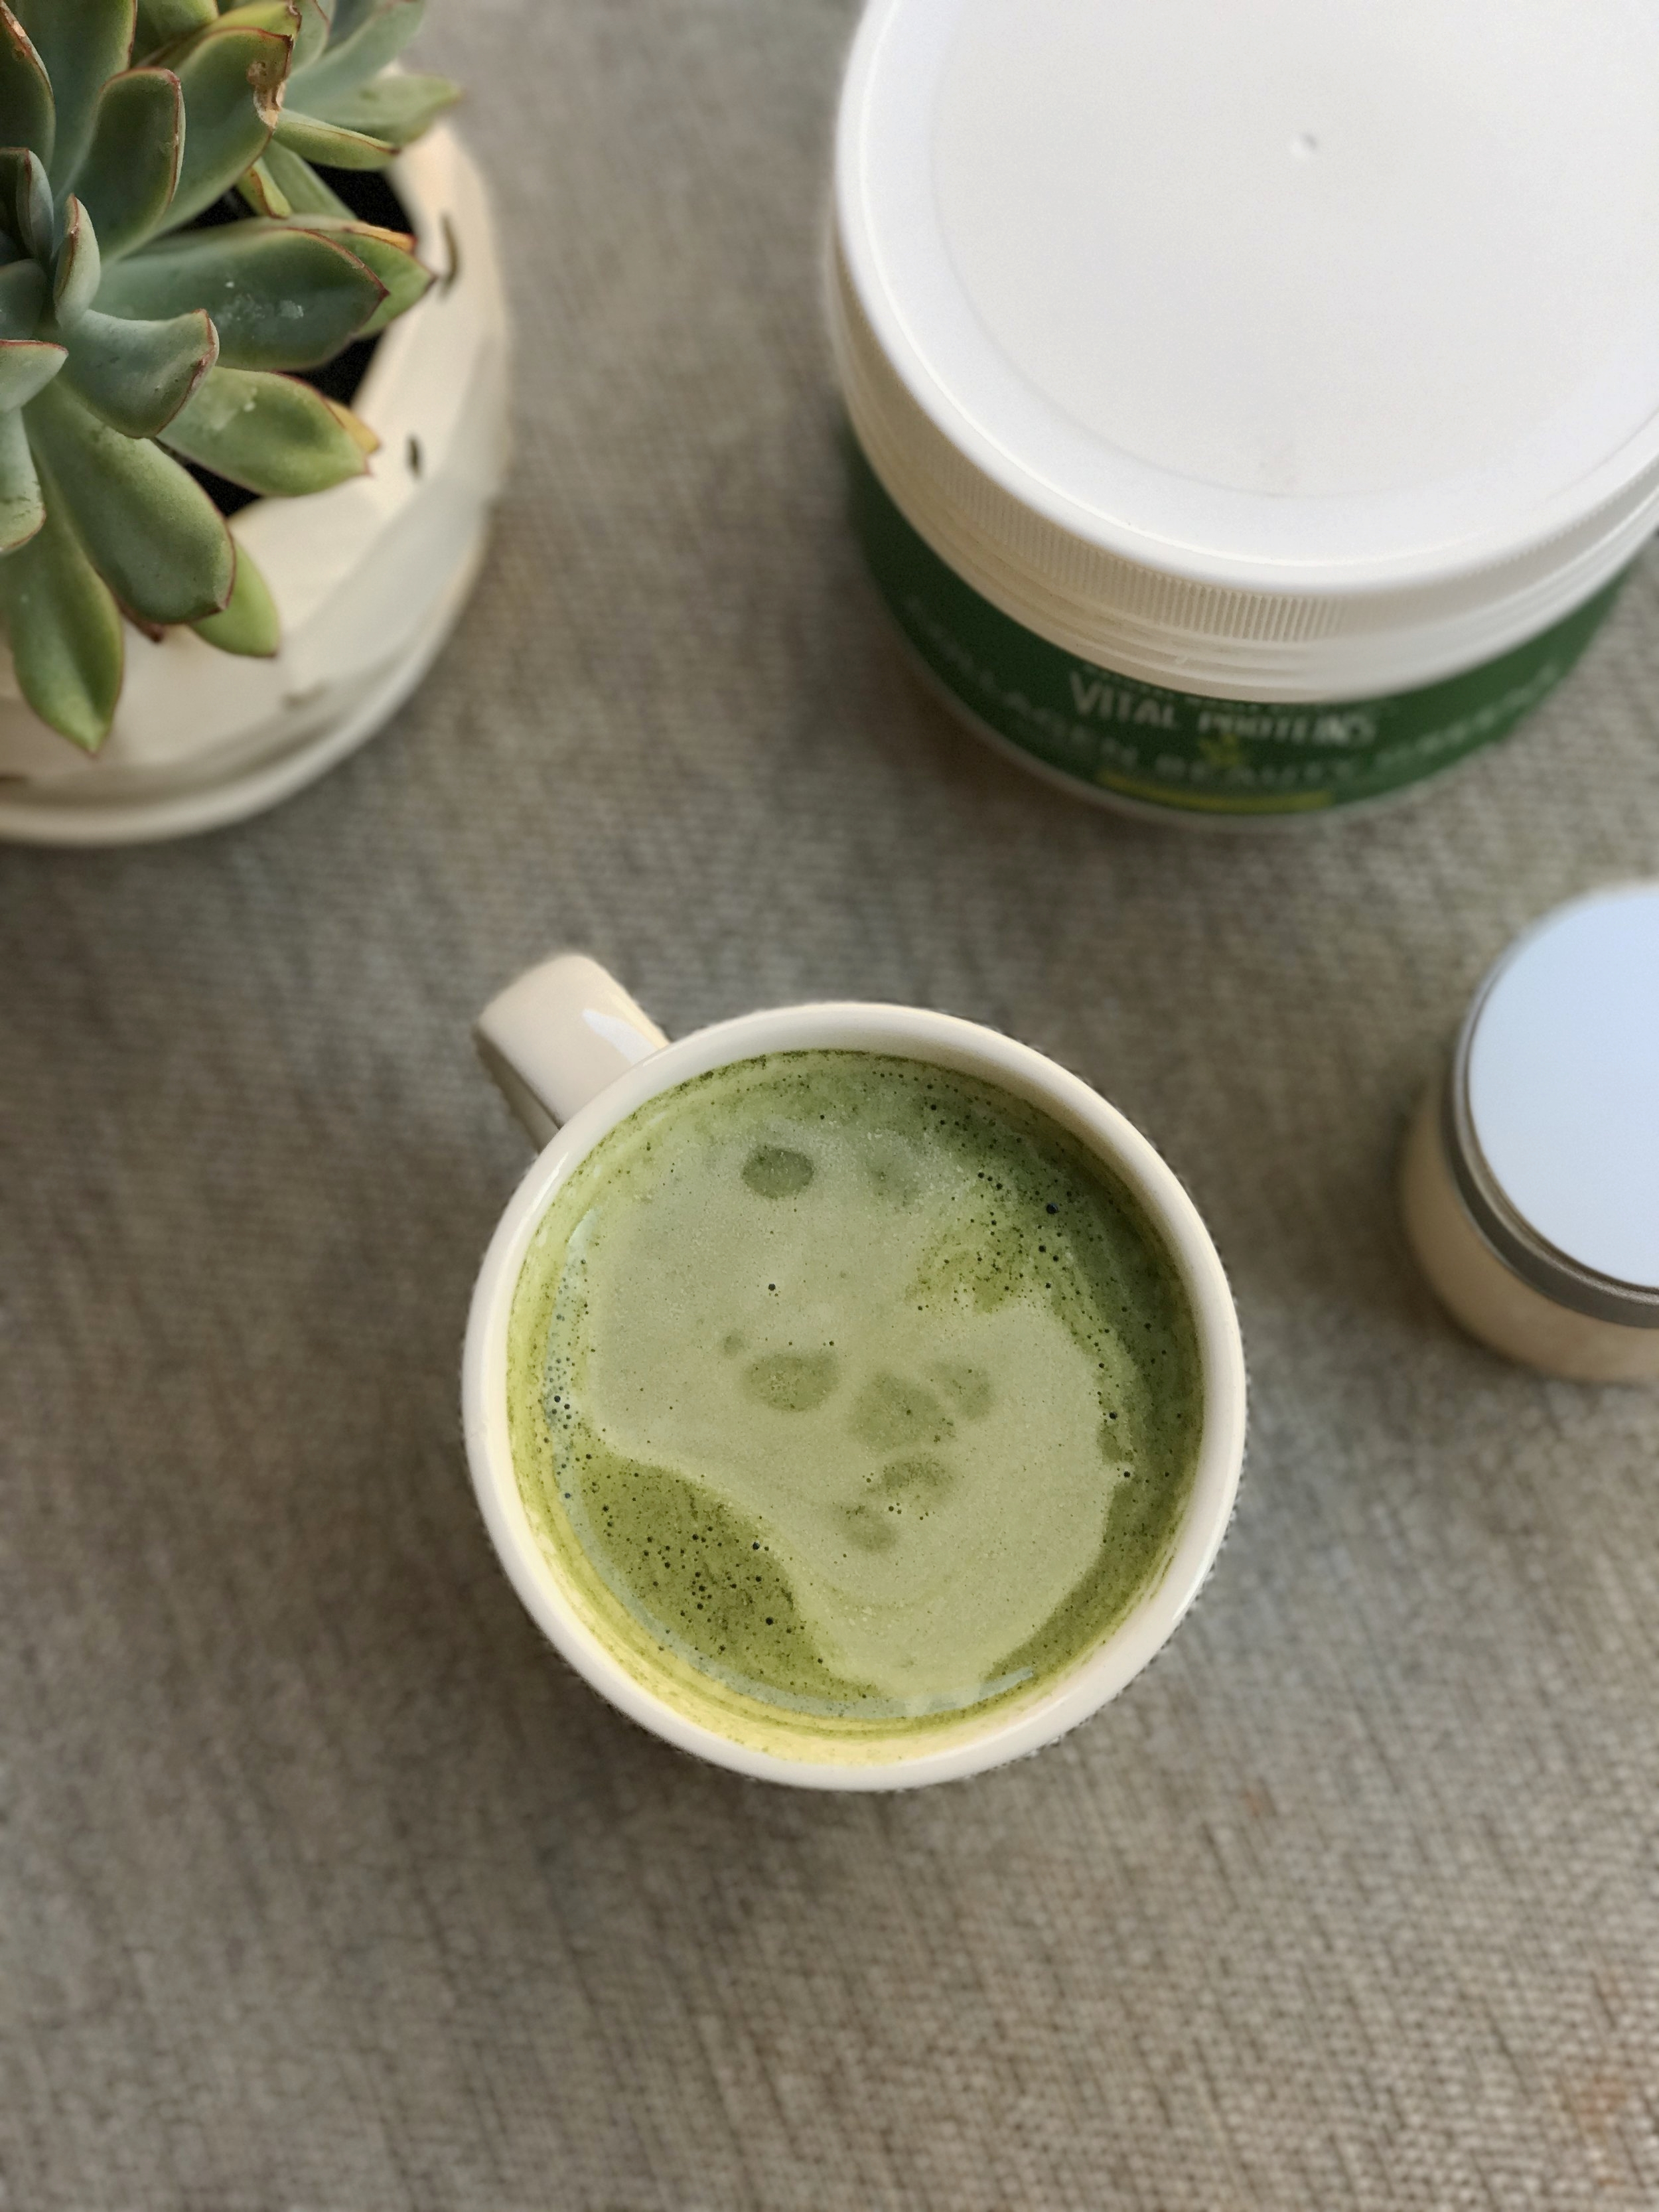 Try Vital Proteins  Collagen Beauty Greens  in a hot or iced matcha latte. I drink a matcha latte every single morning.